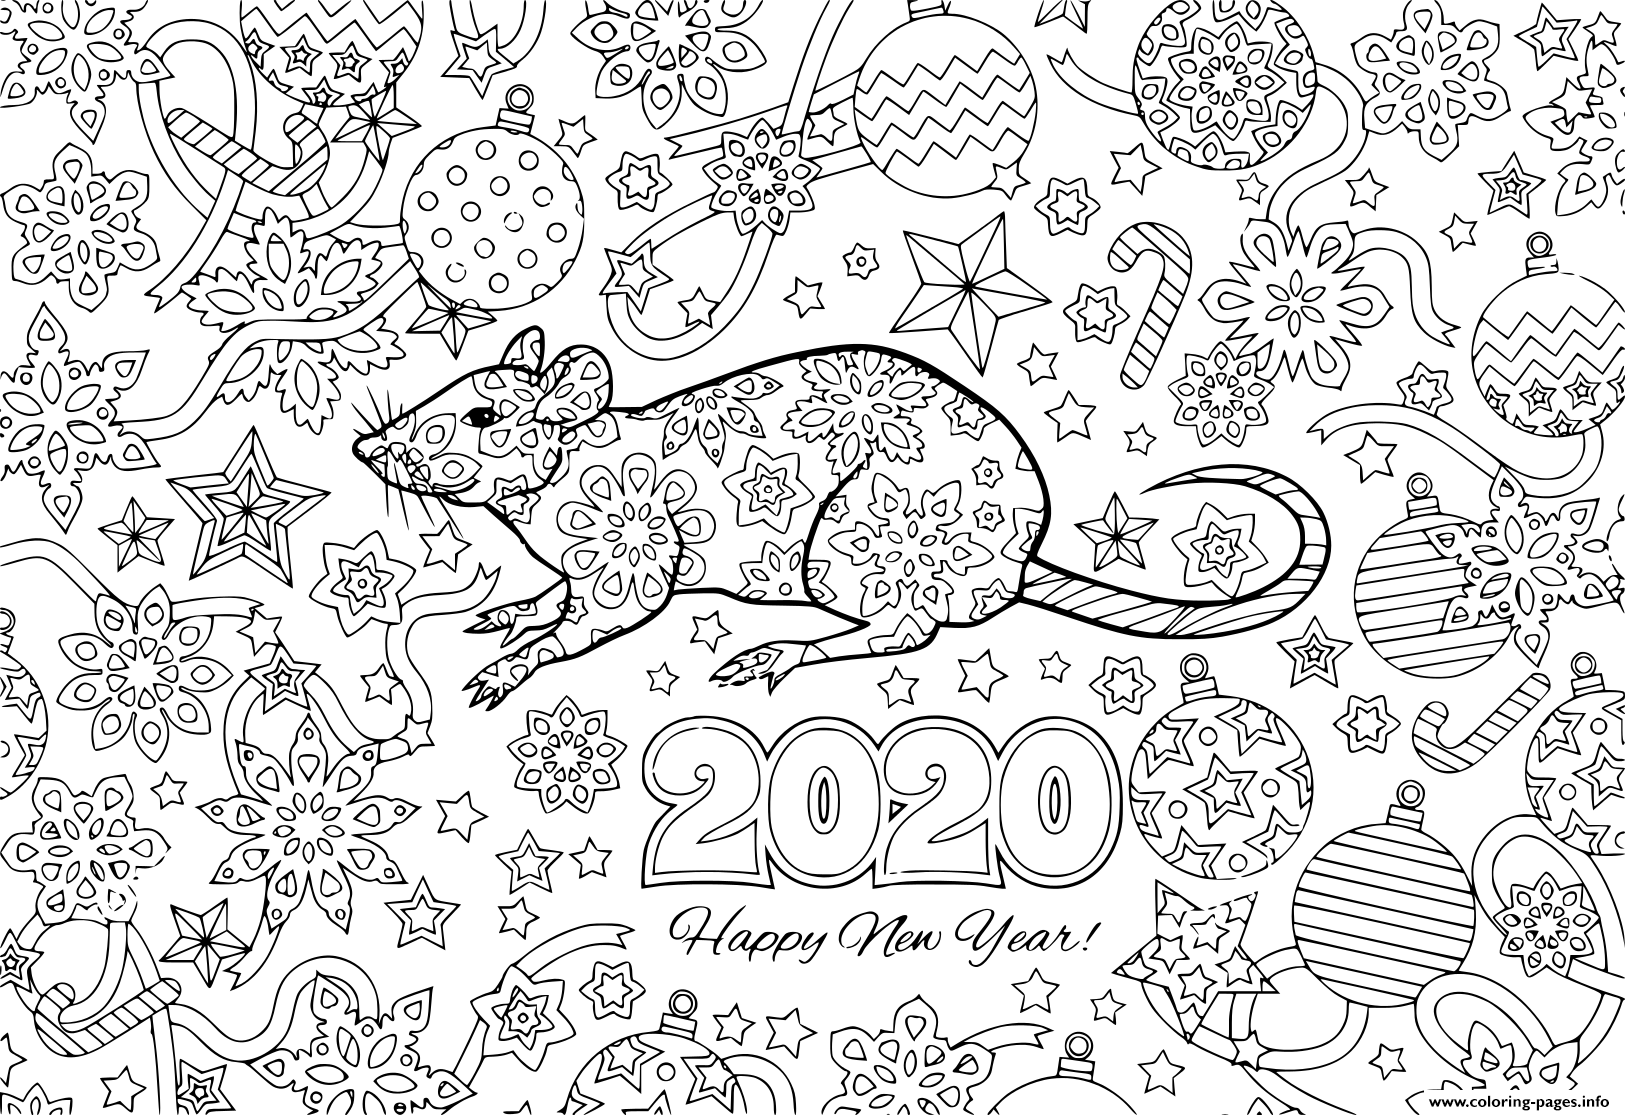 Chinese New Year Animals of the Zodiac Mindfulness Coloring Pages ... | 1115x1625